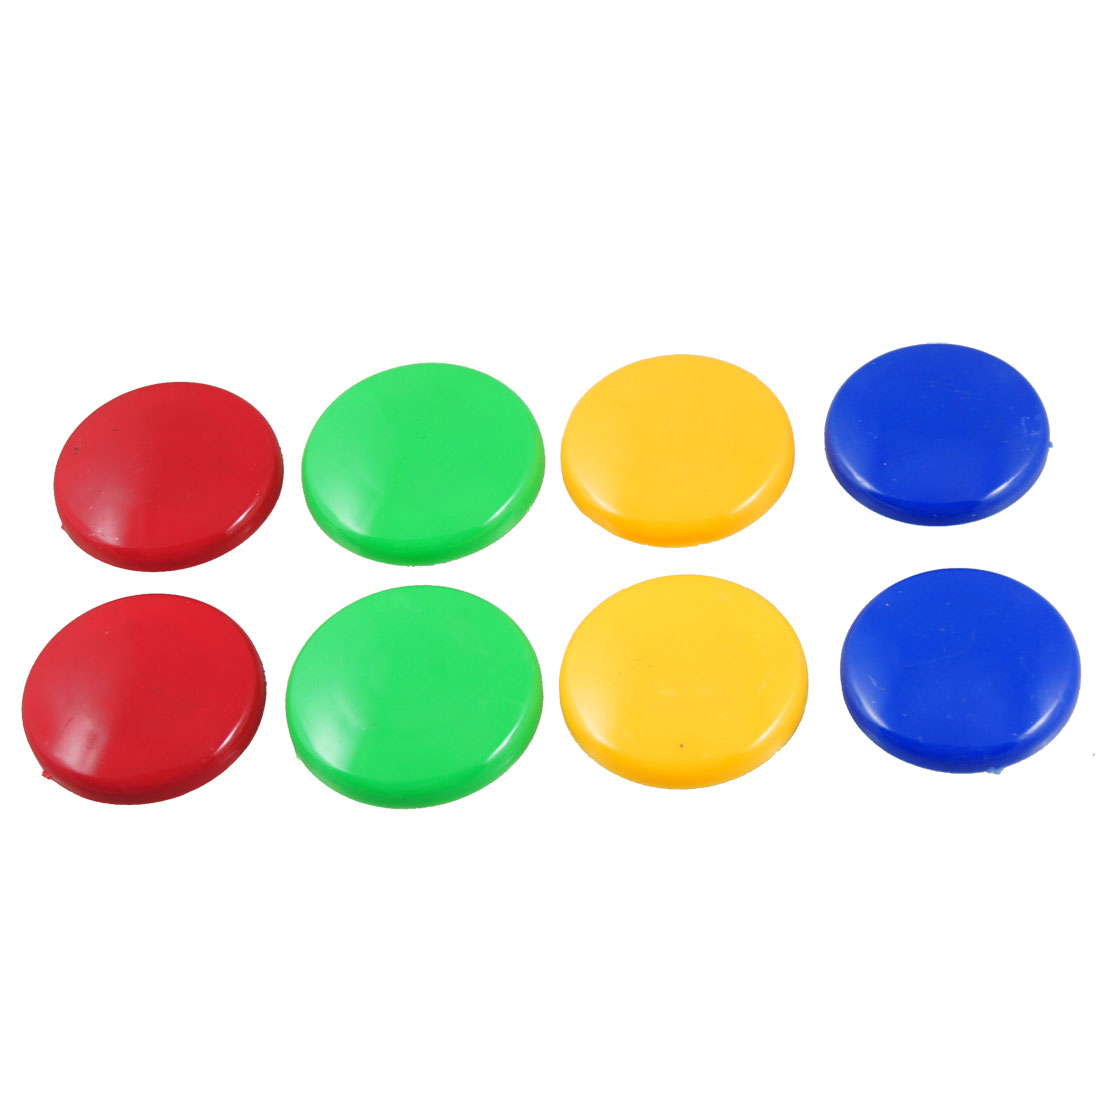 8 Pcs Multi Color 40mm Dia Round Fridge Magnets Paper Holder Set